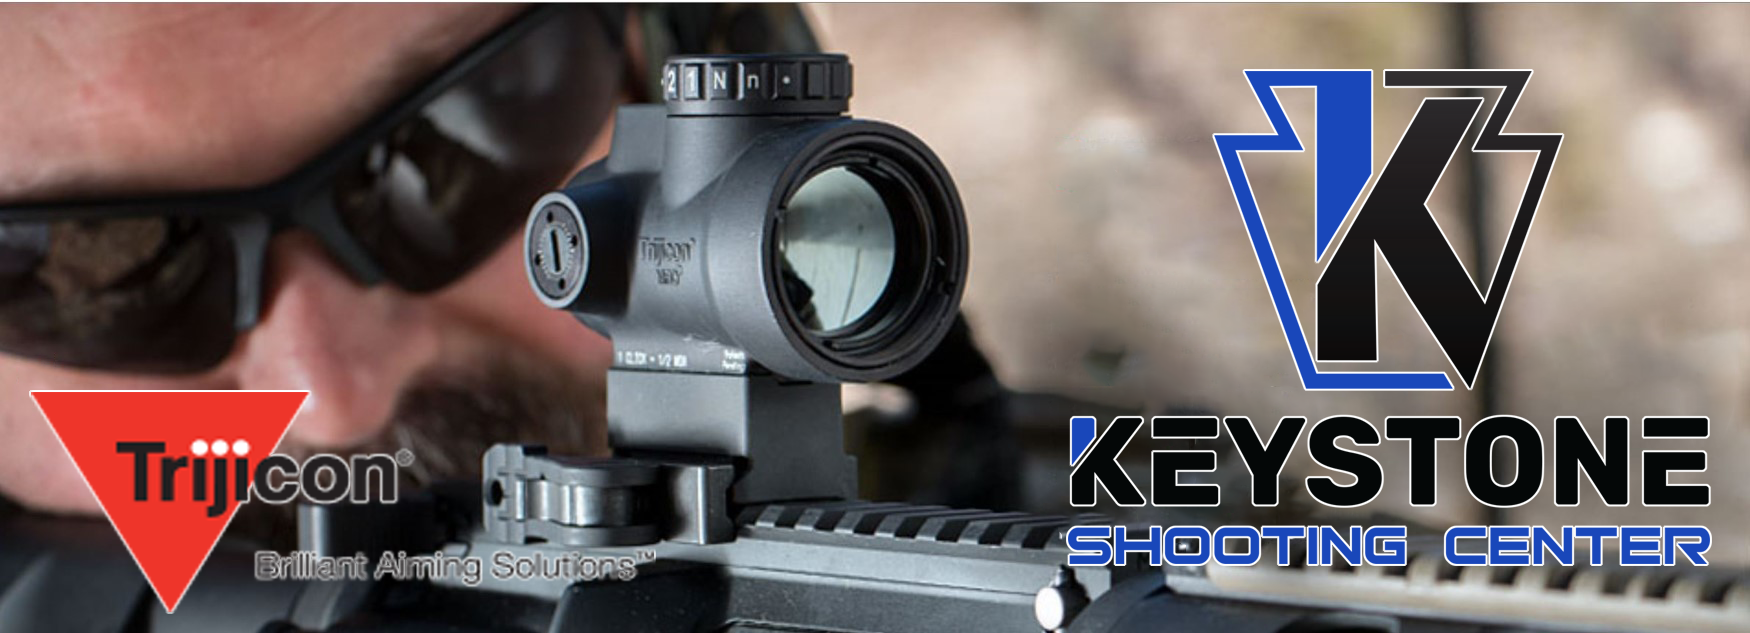 https://shop.keystoneshootingcenter.com/search?q=trijicon&sort=